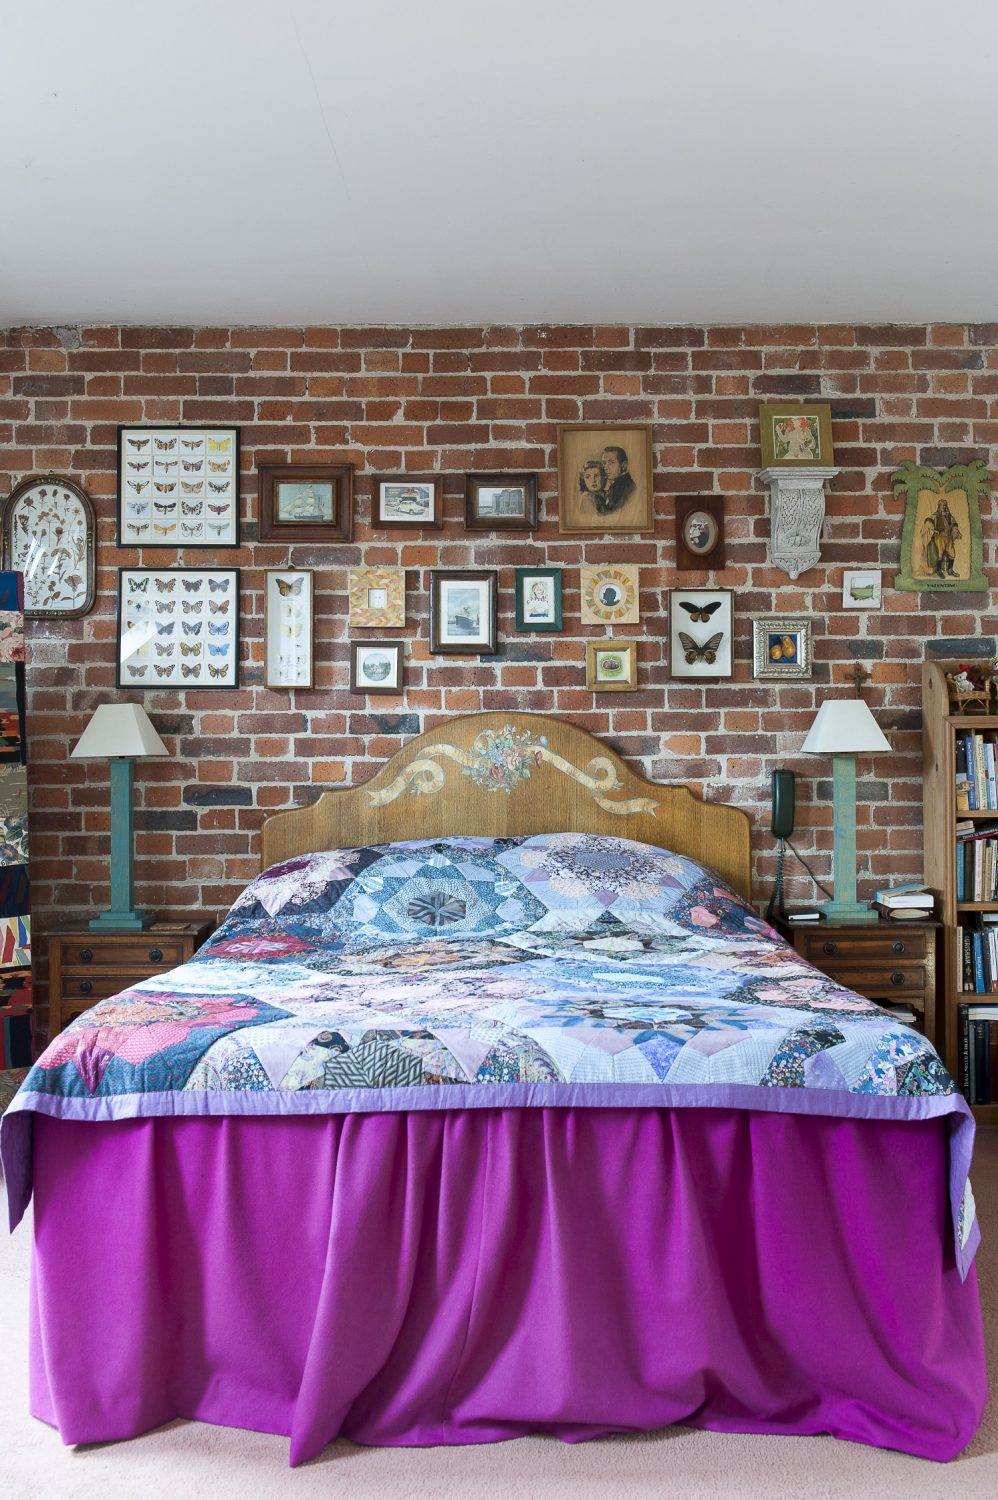 Collections of framed butterflies and portraits line the bare brick wall in the master bedroom. The quilt was handmade locally